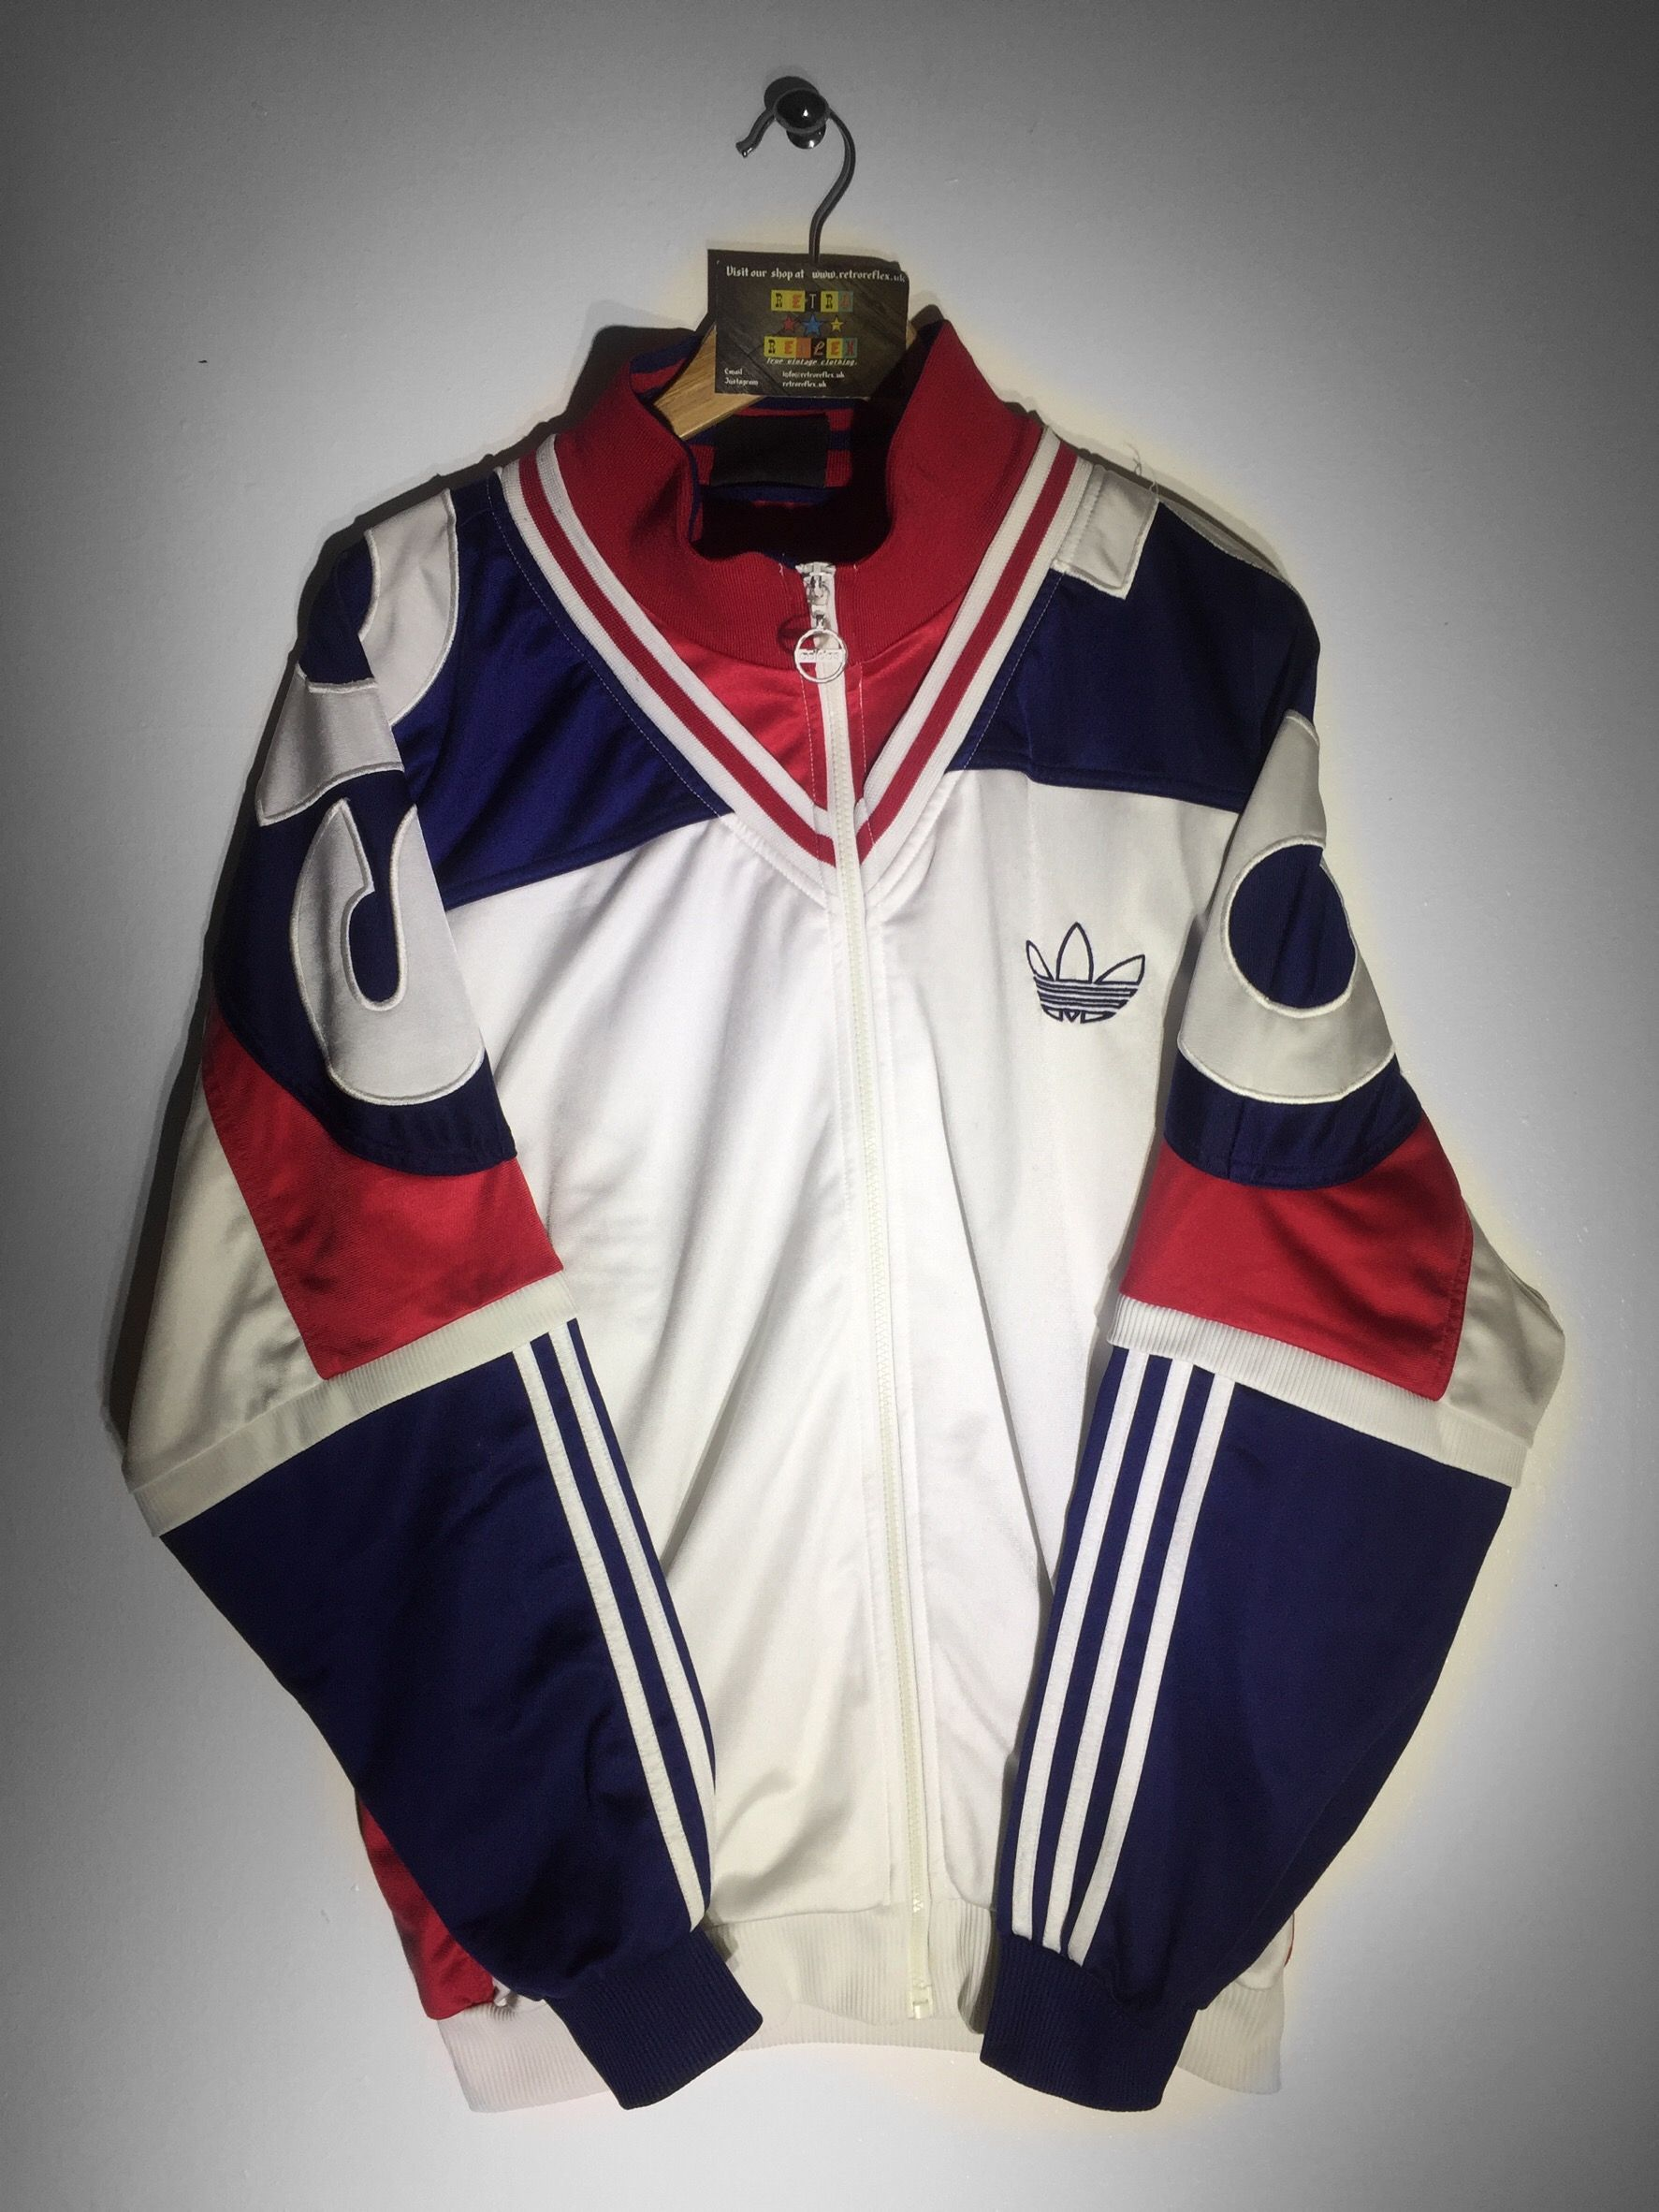 Adidas track jacket size Large(but Fits Oversized) £34